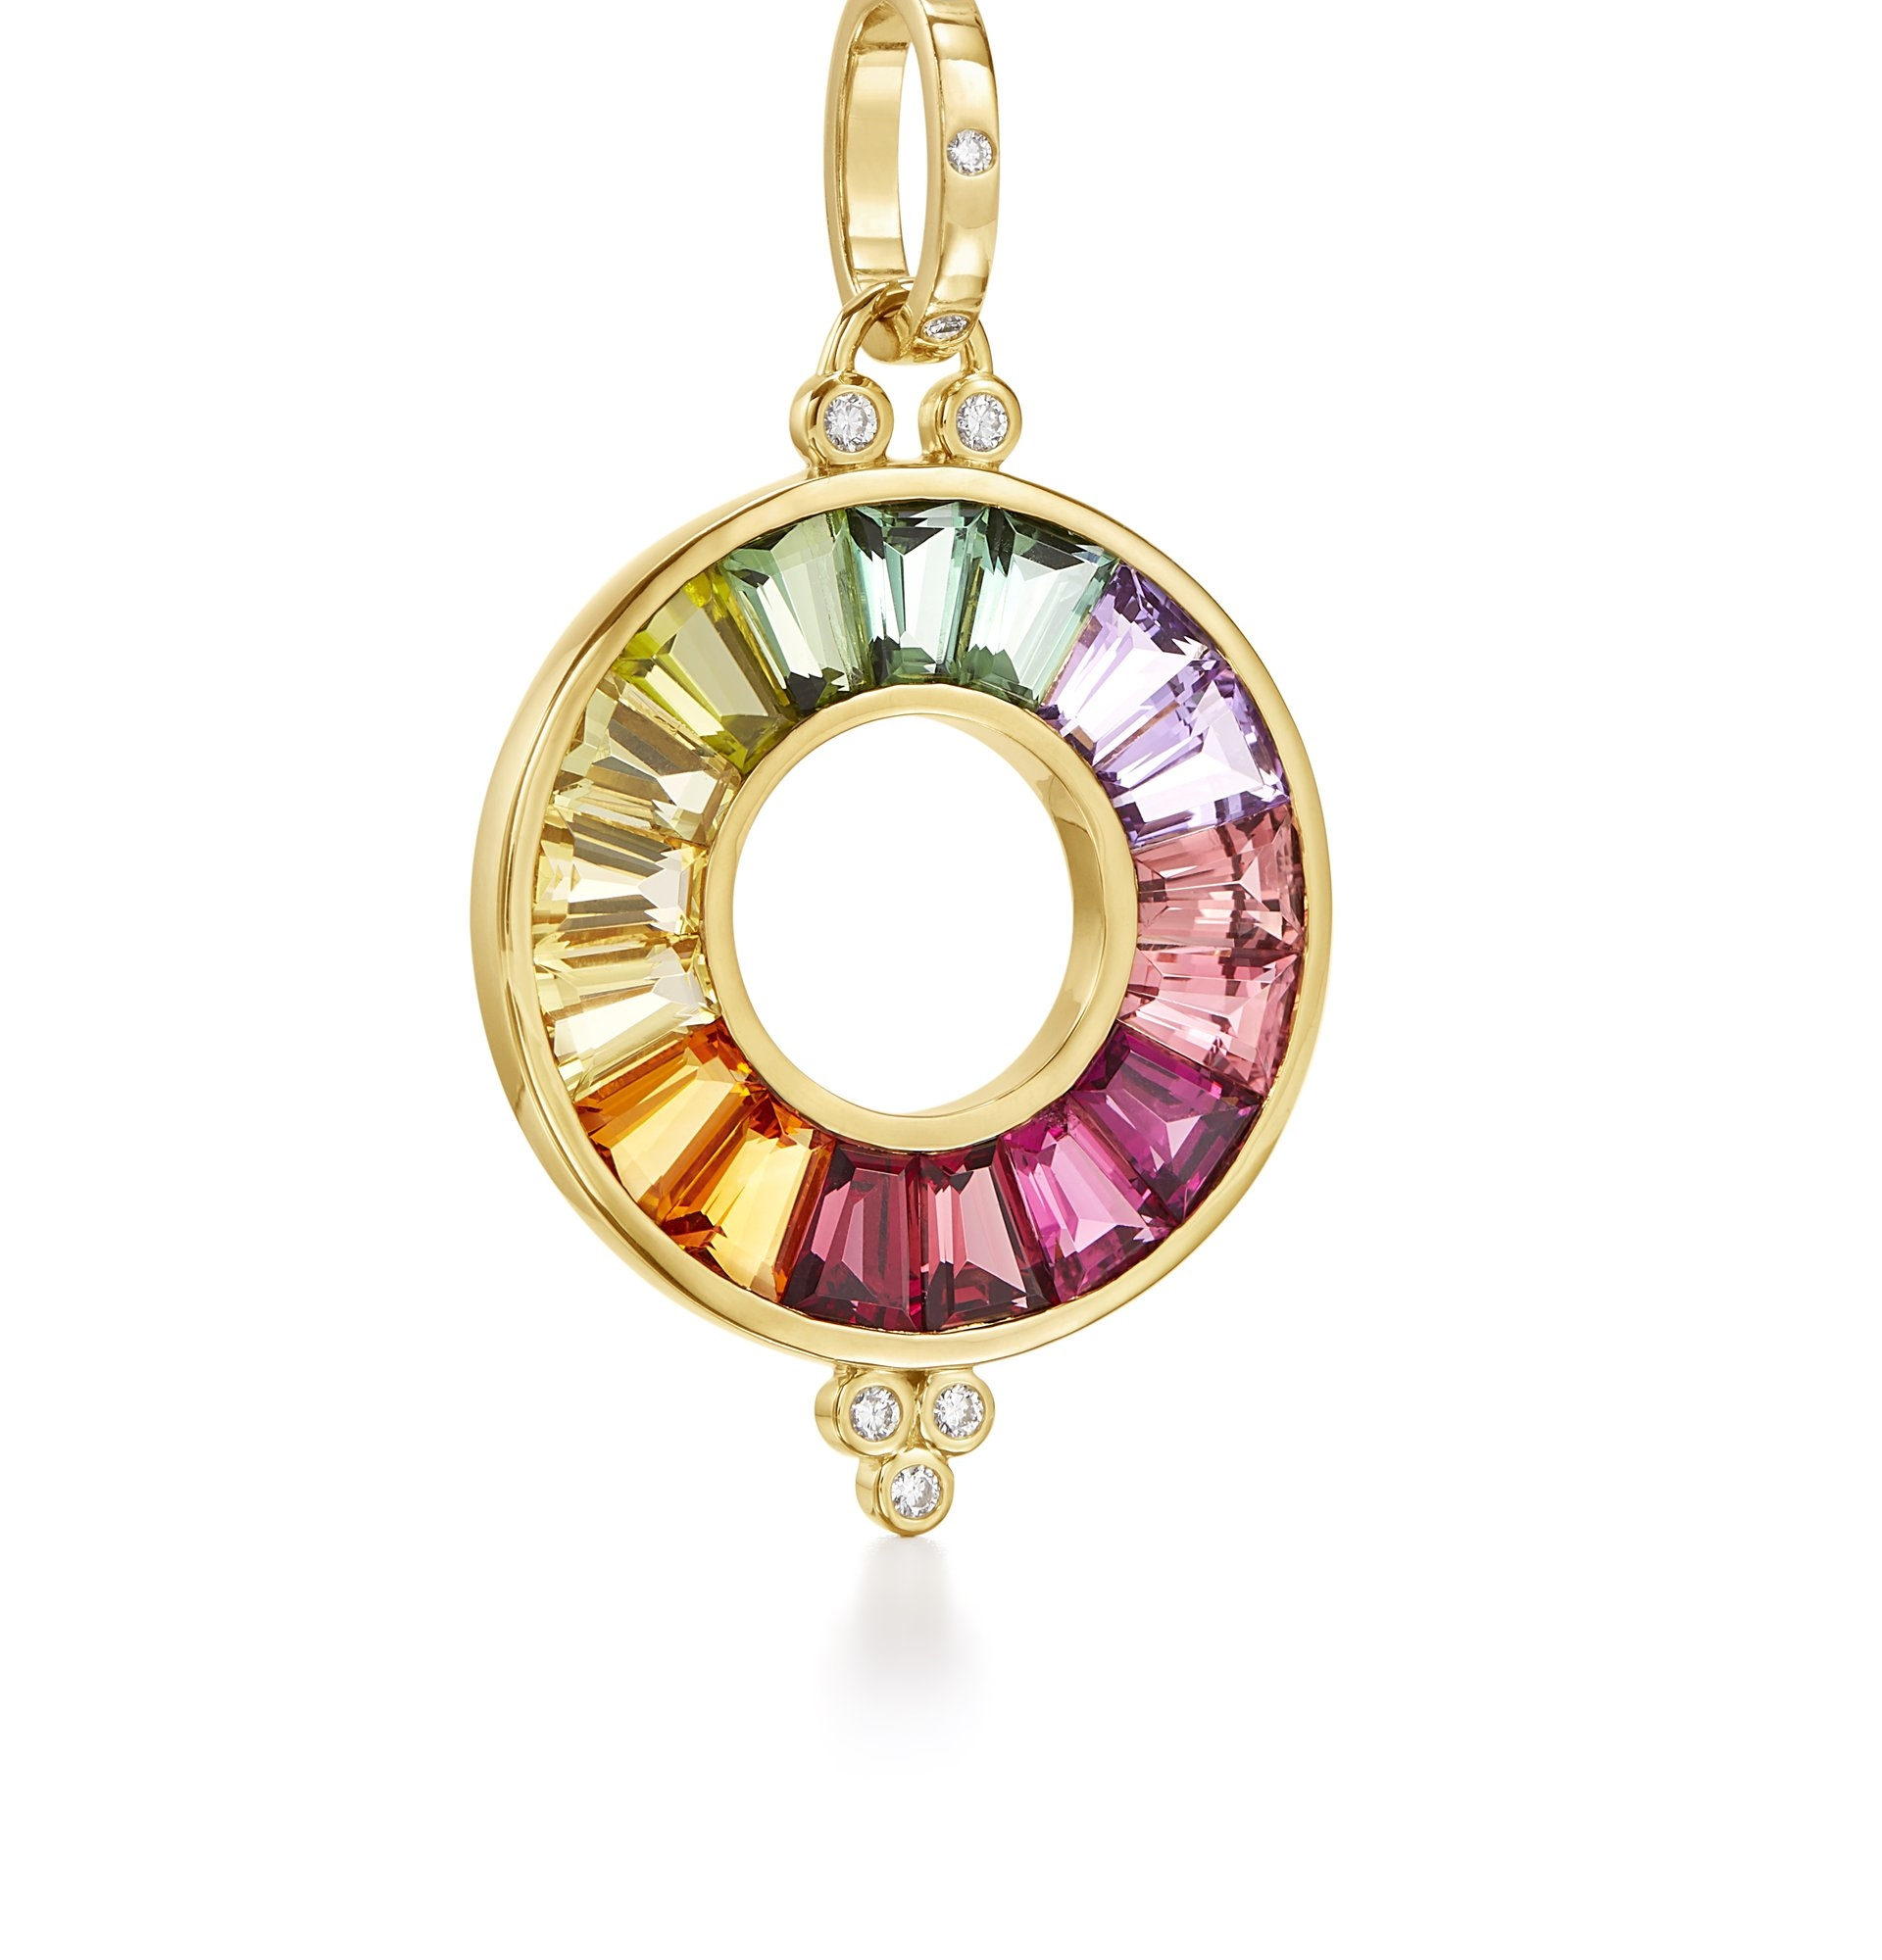 Temple St. Clair 18K Yellow Gold   Gemstones Gold Pendants / Charms P46123-LGHAMX